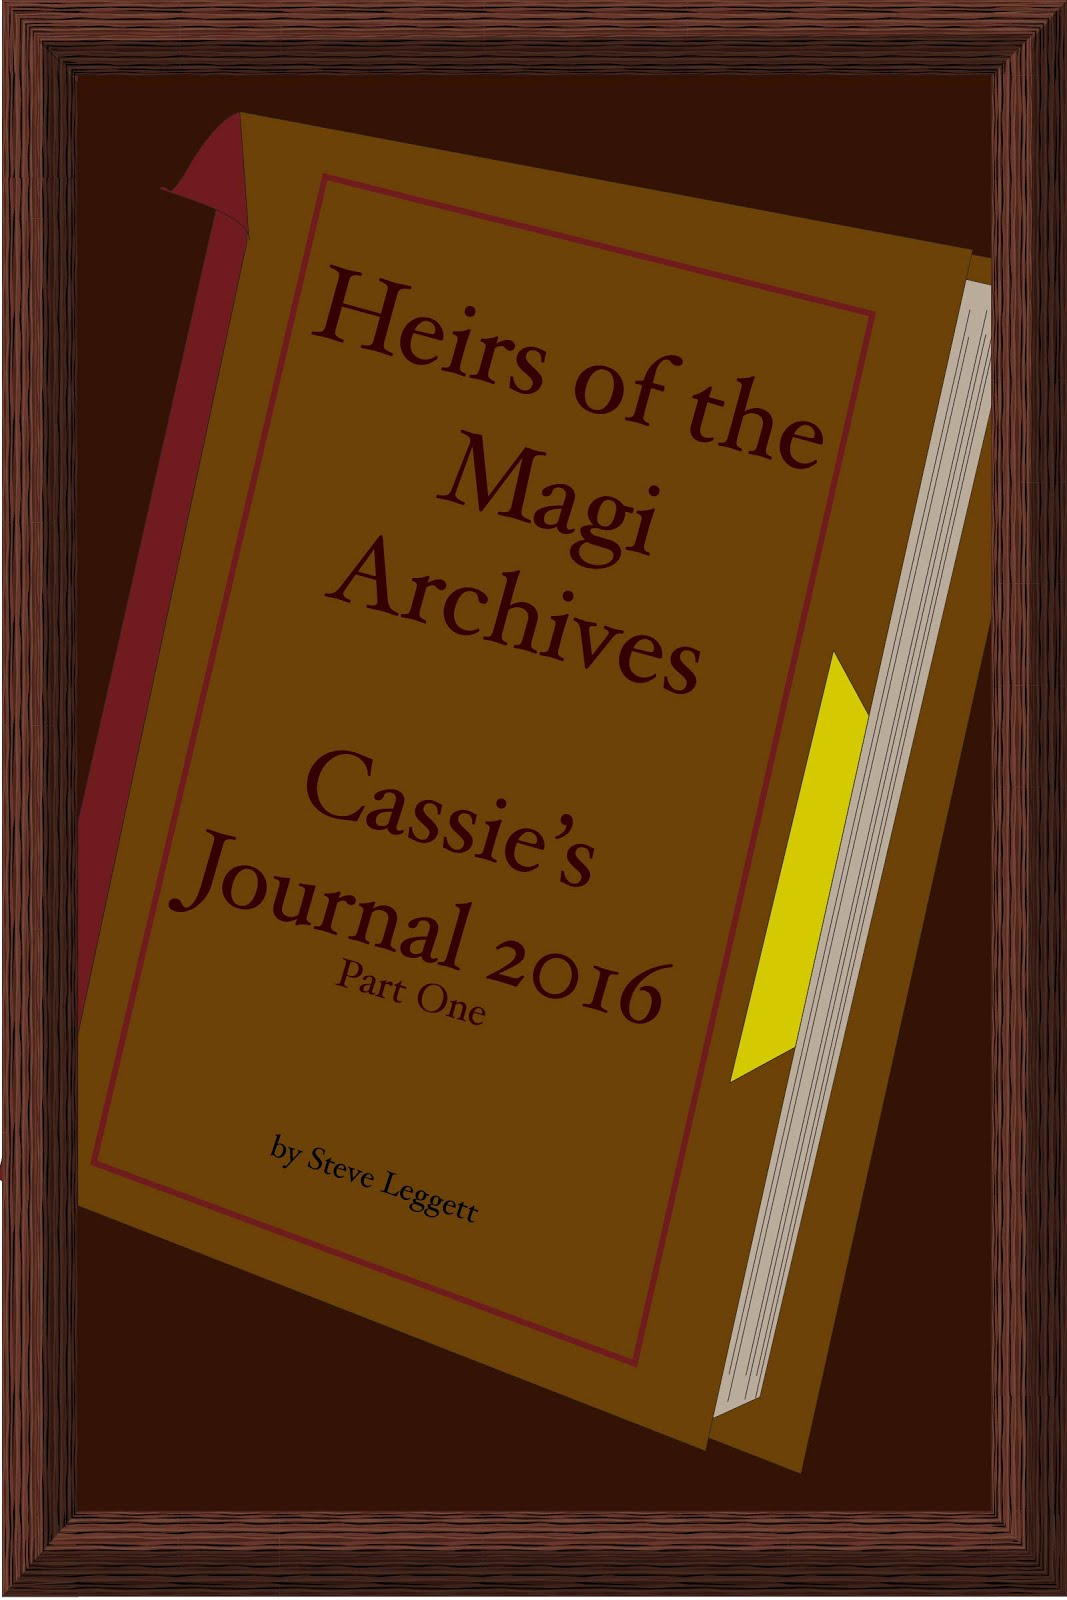 Cassie's Journal 2016 - Part One